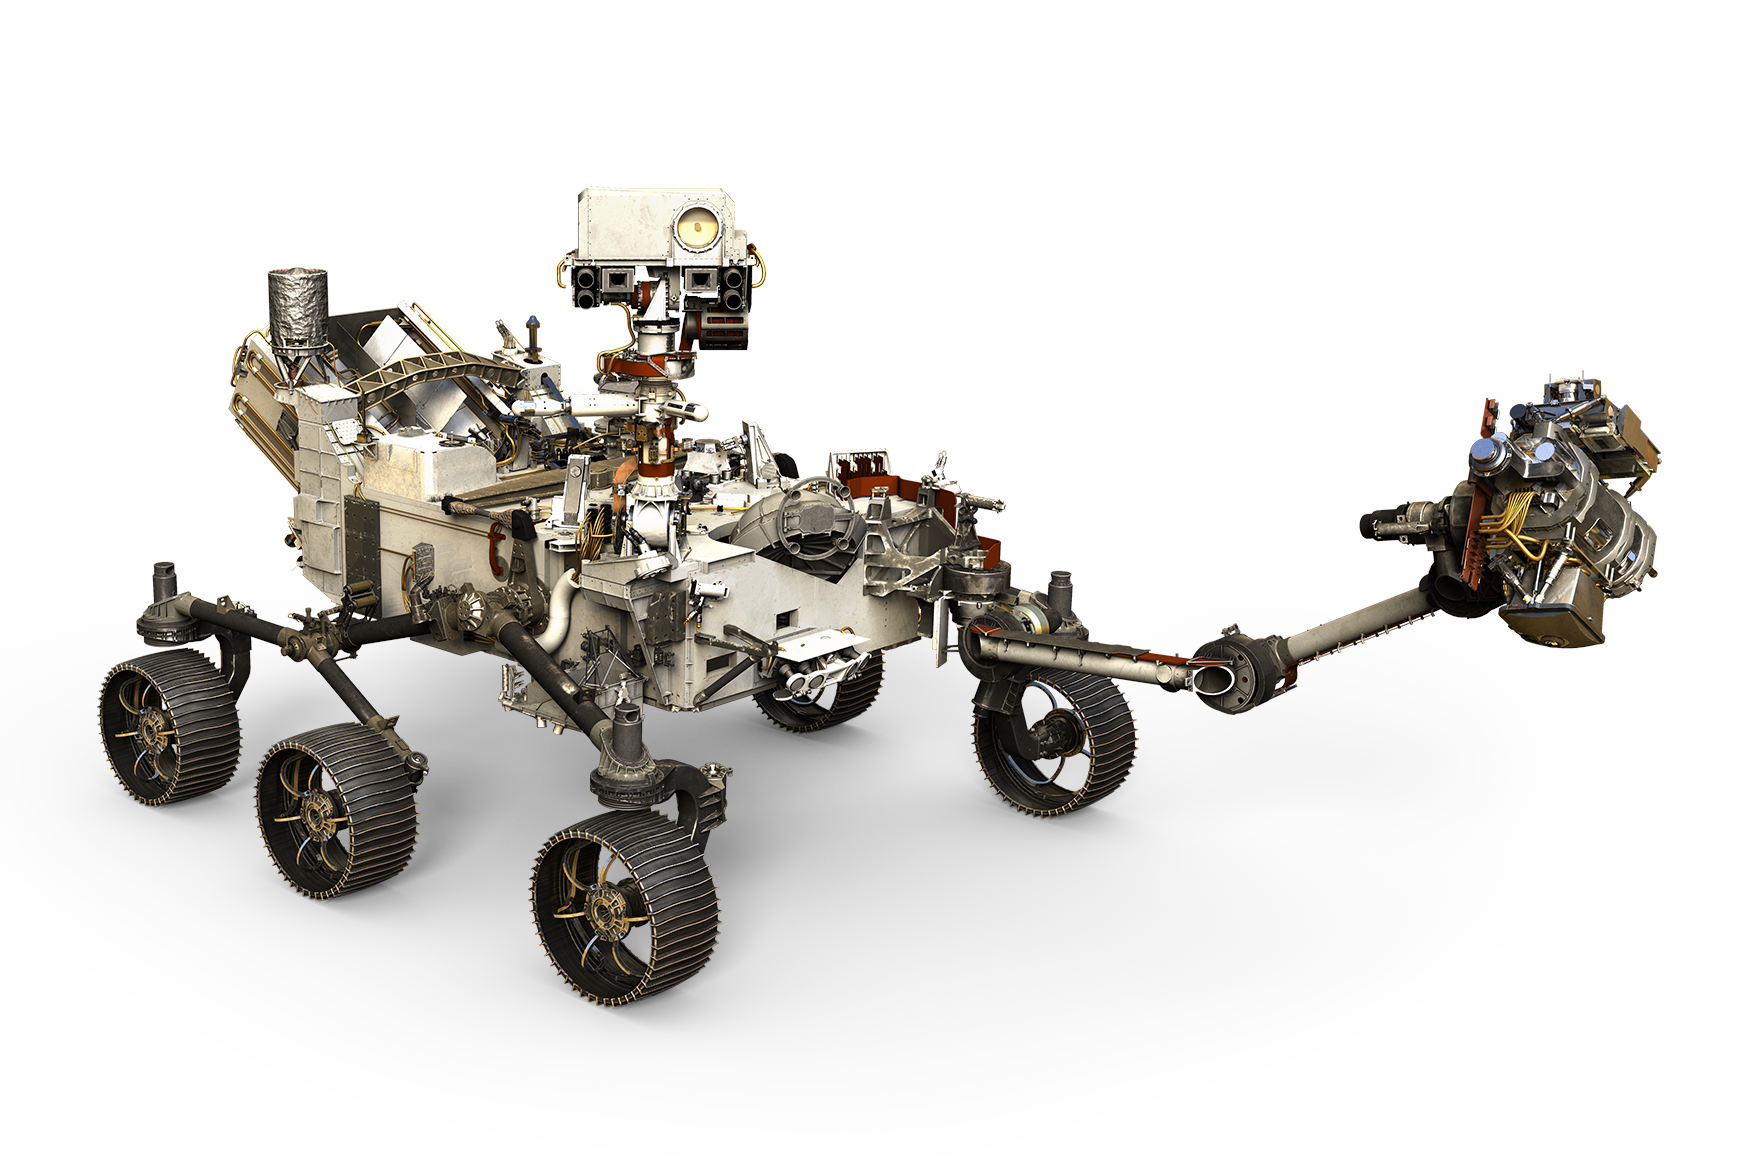 https://img.generation-nt.com/mars-2020-rover_06E1049601665213.png